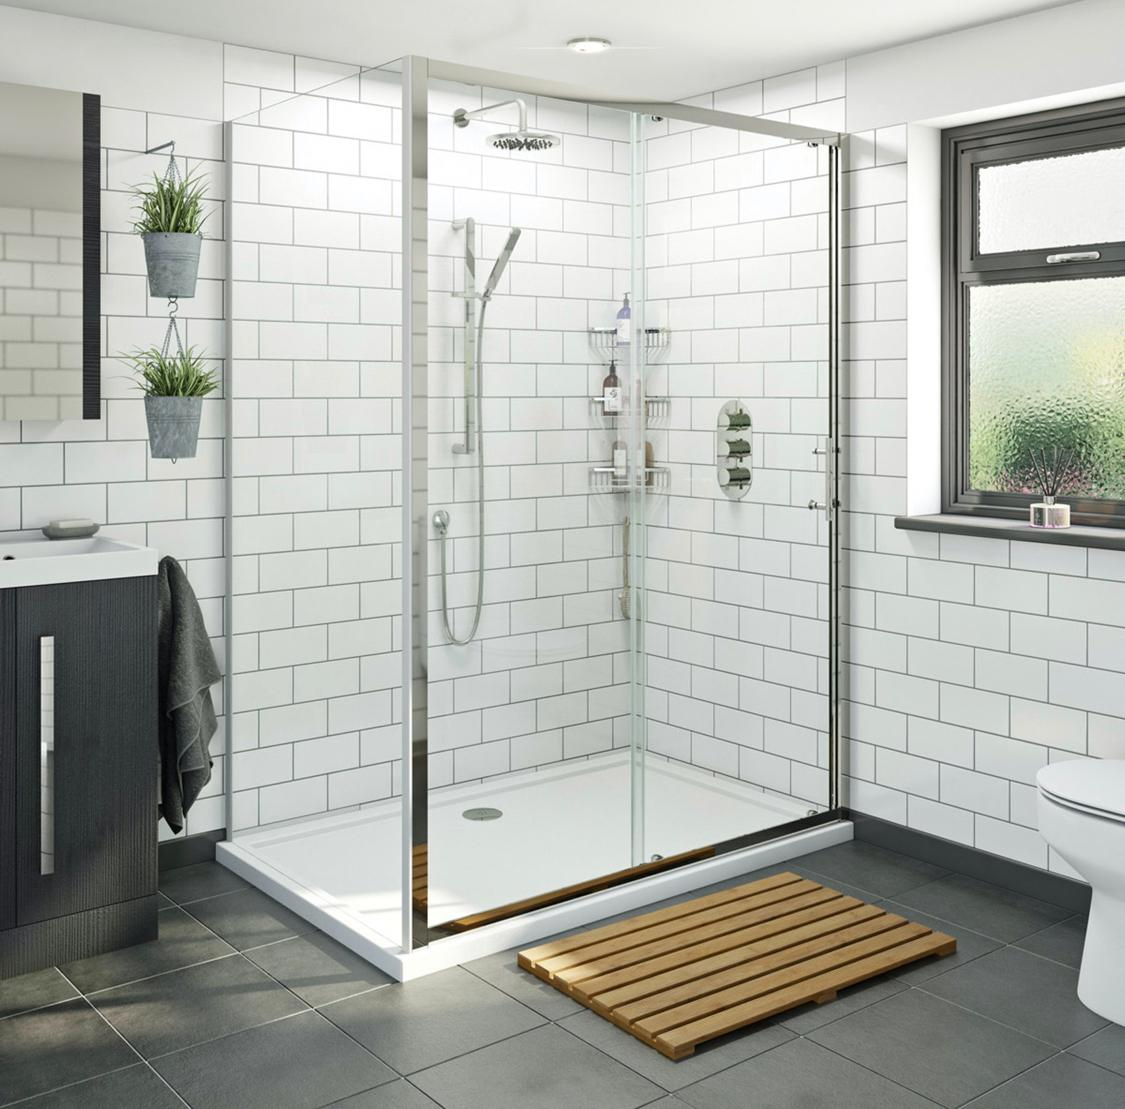 Double width shower cubicle